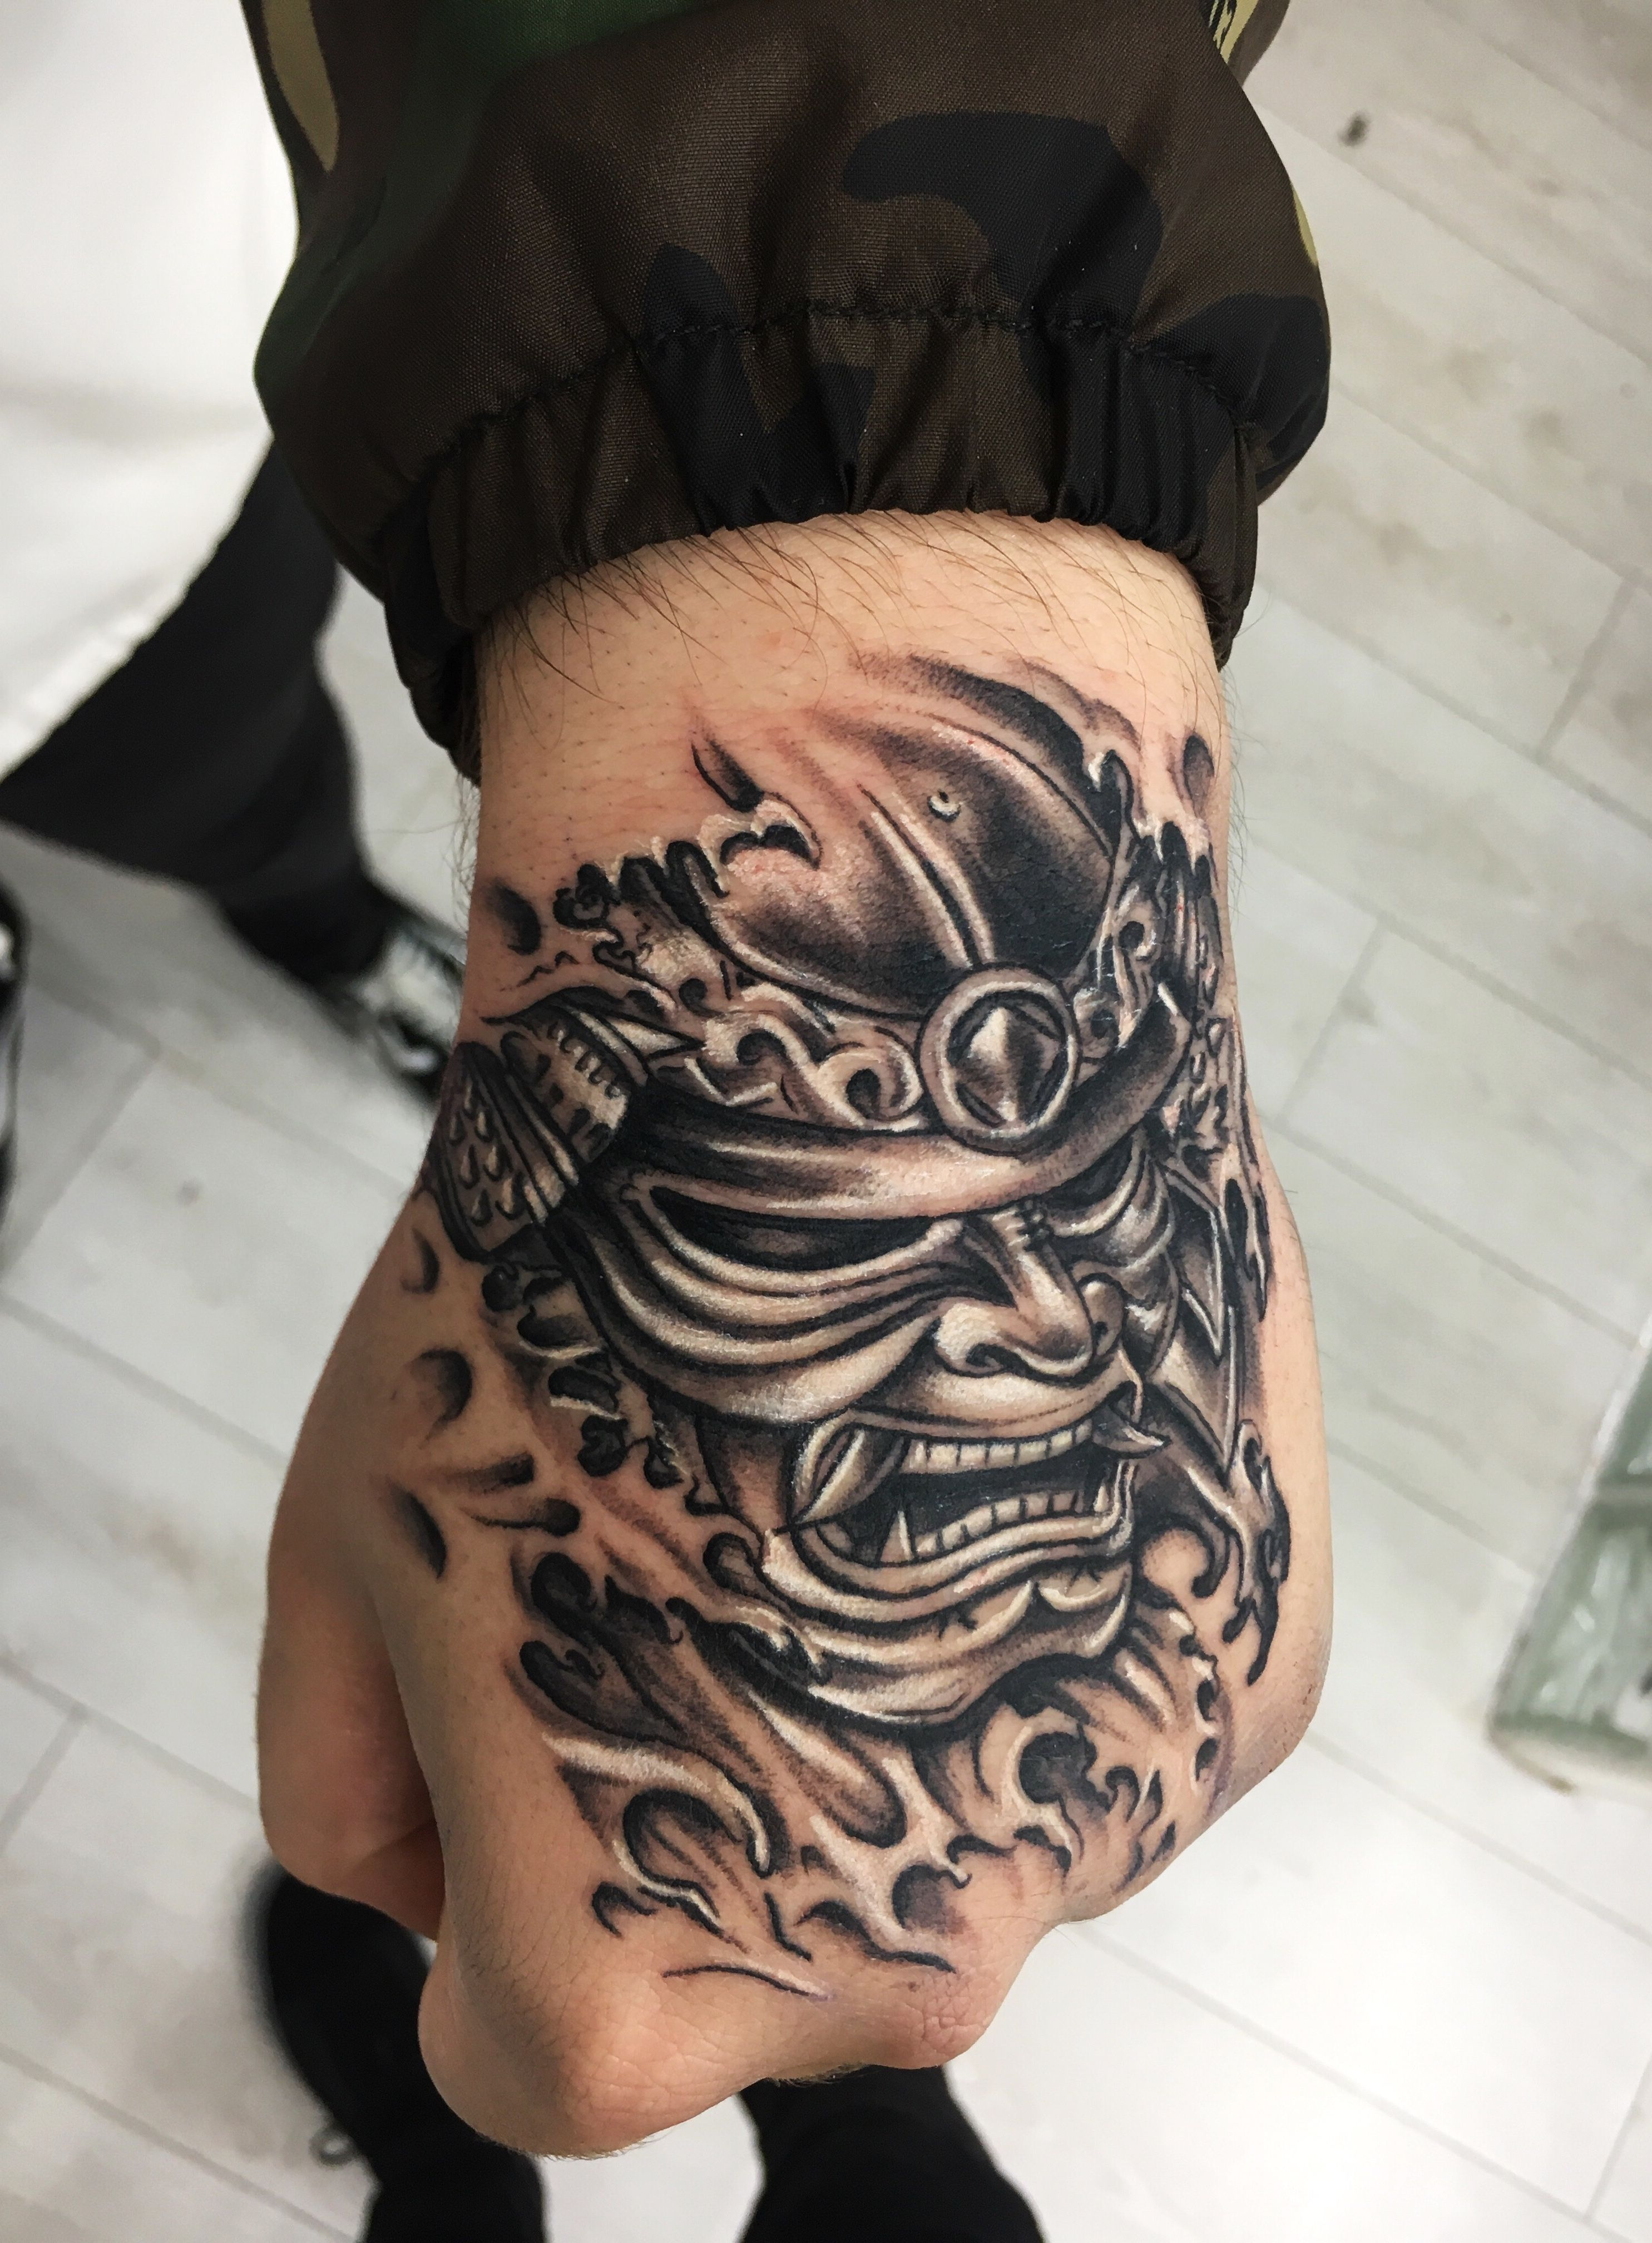 Image Result For Samurai Tattoo On Hand Japanese Tattoo Japanese Hand Tattoos Hand Tattoos